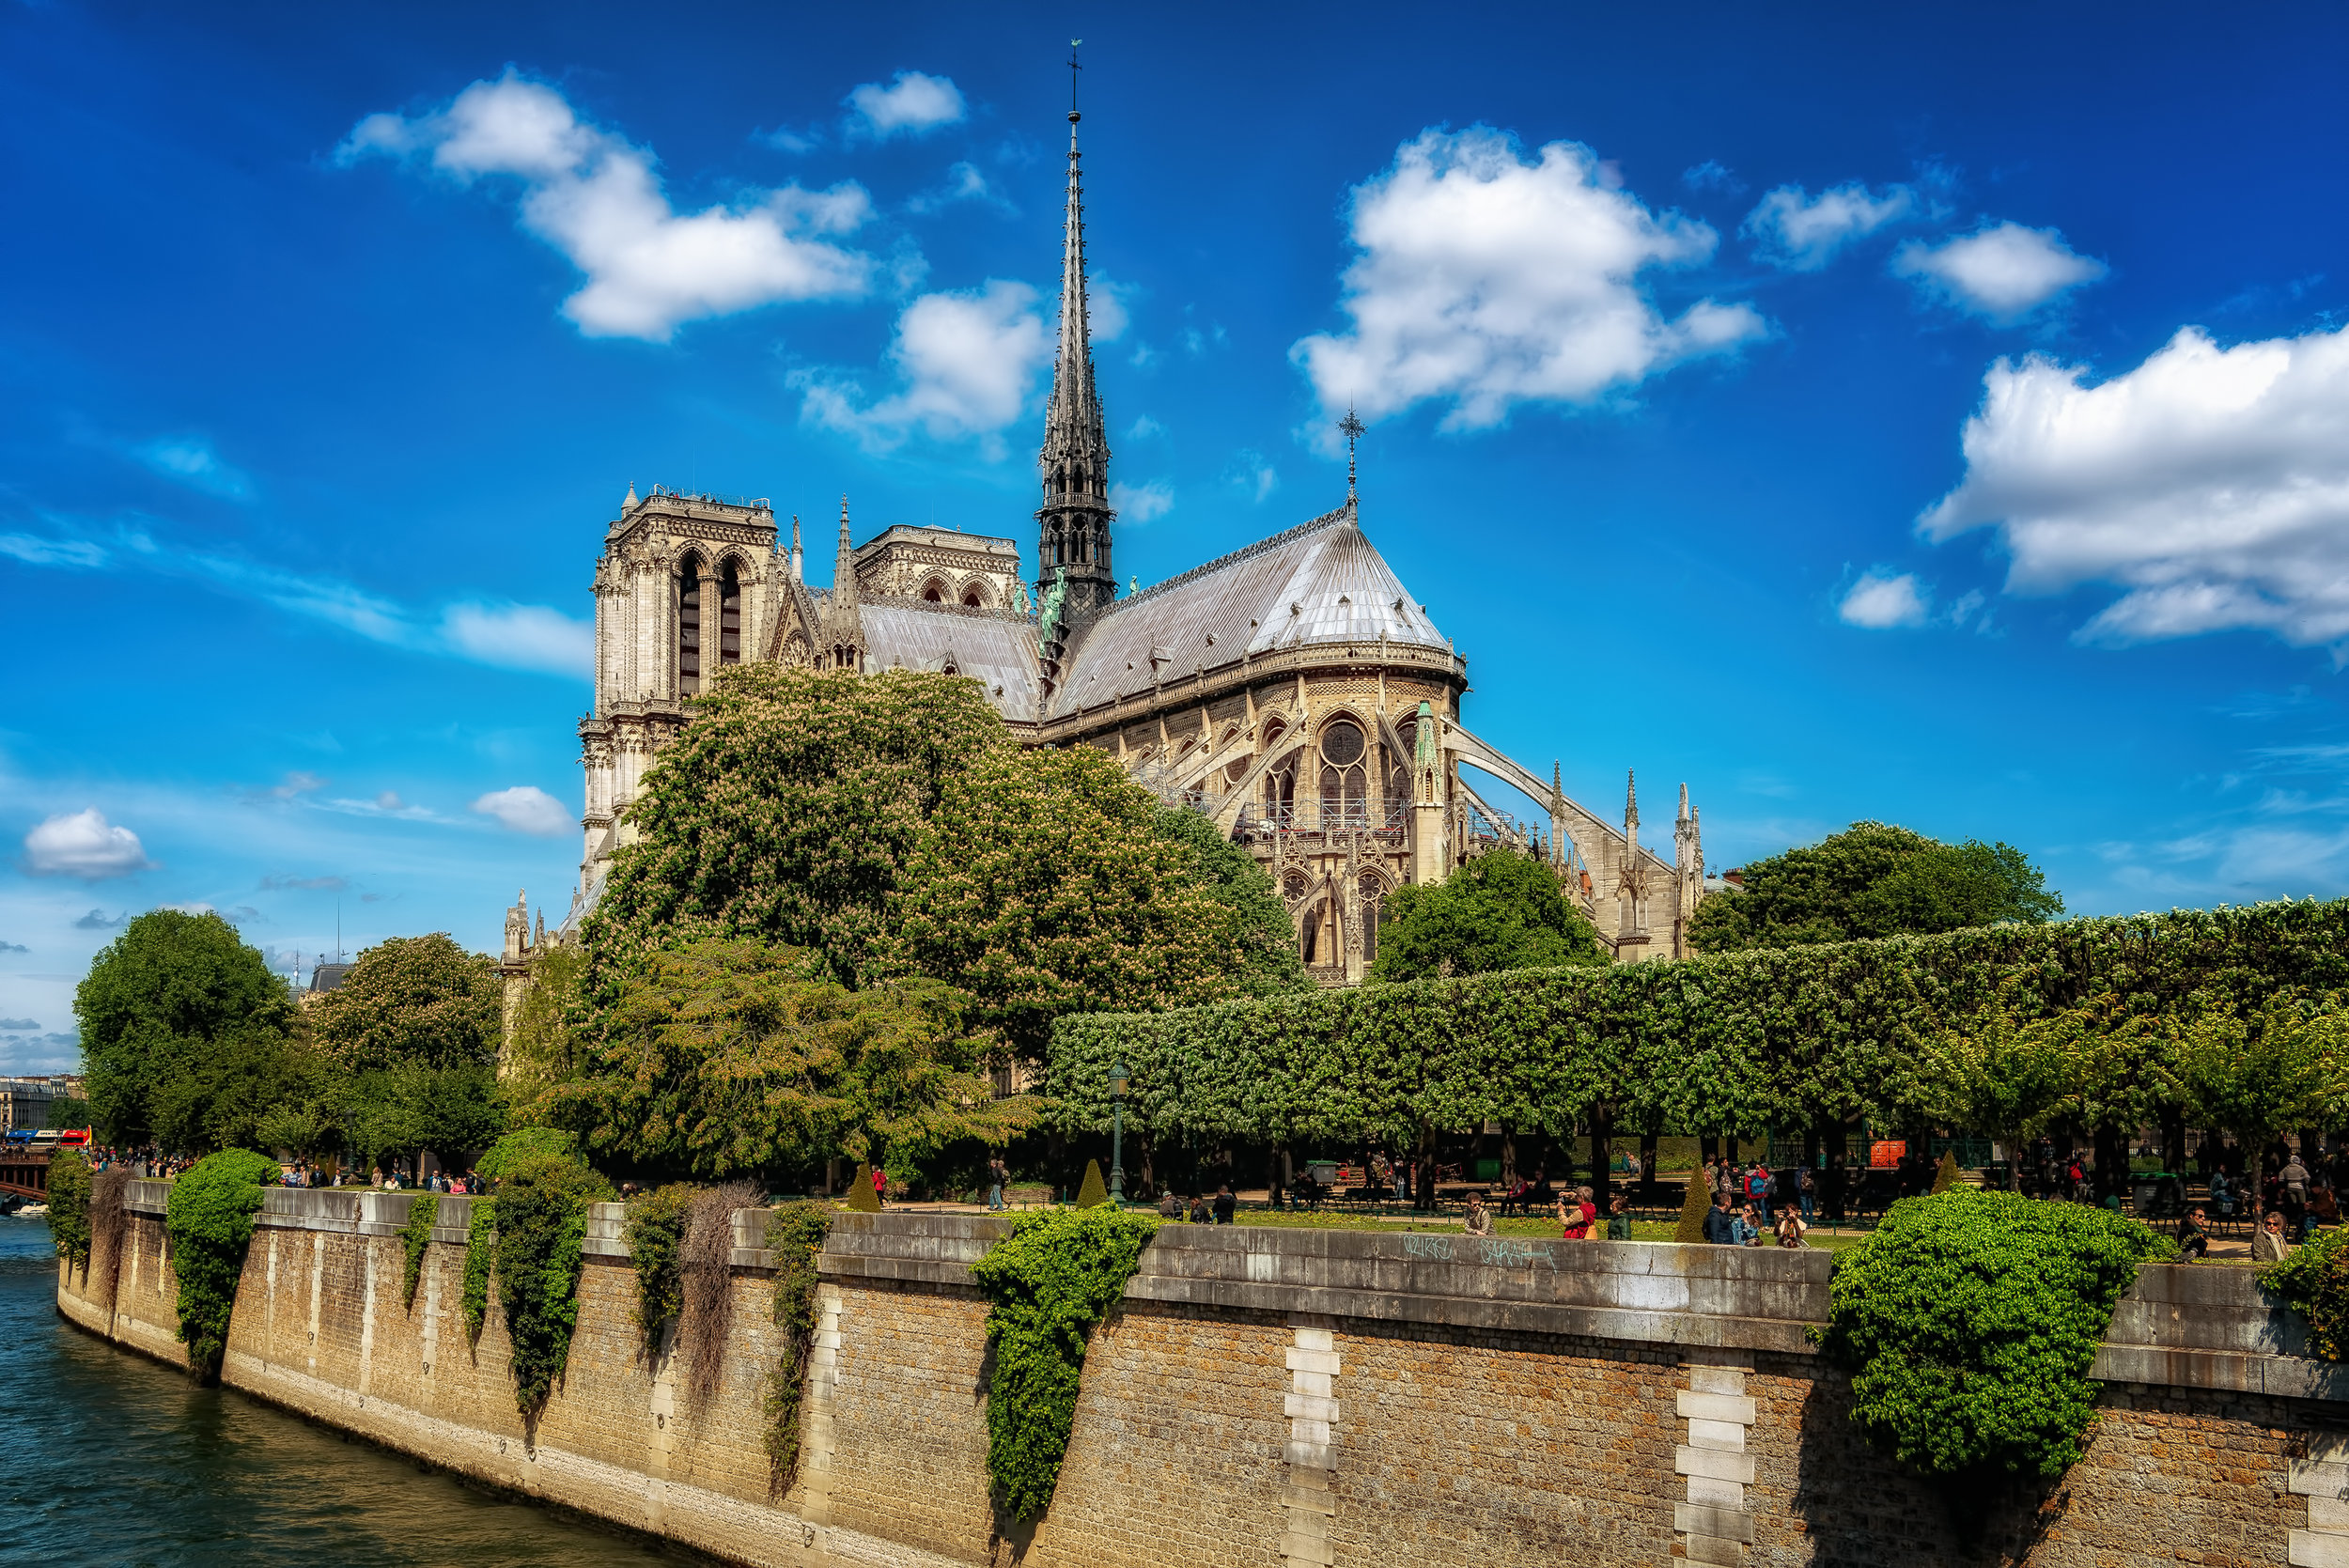 Notre Dame - Nikon D750, 1/200 @ f/13, ISO100, 35mm. Shot this in the Spring of 18. Like so many citizens of the world, absolutely heartbroken by the damage done to this beautiful cathedral in the recent fire.